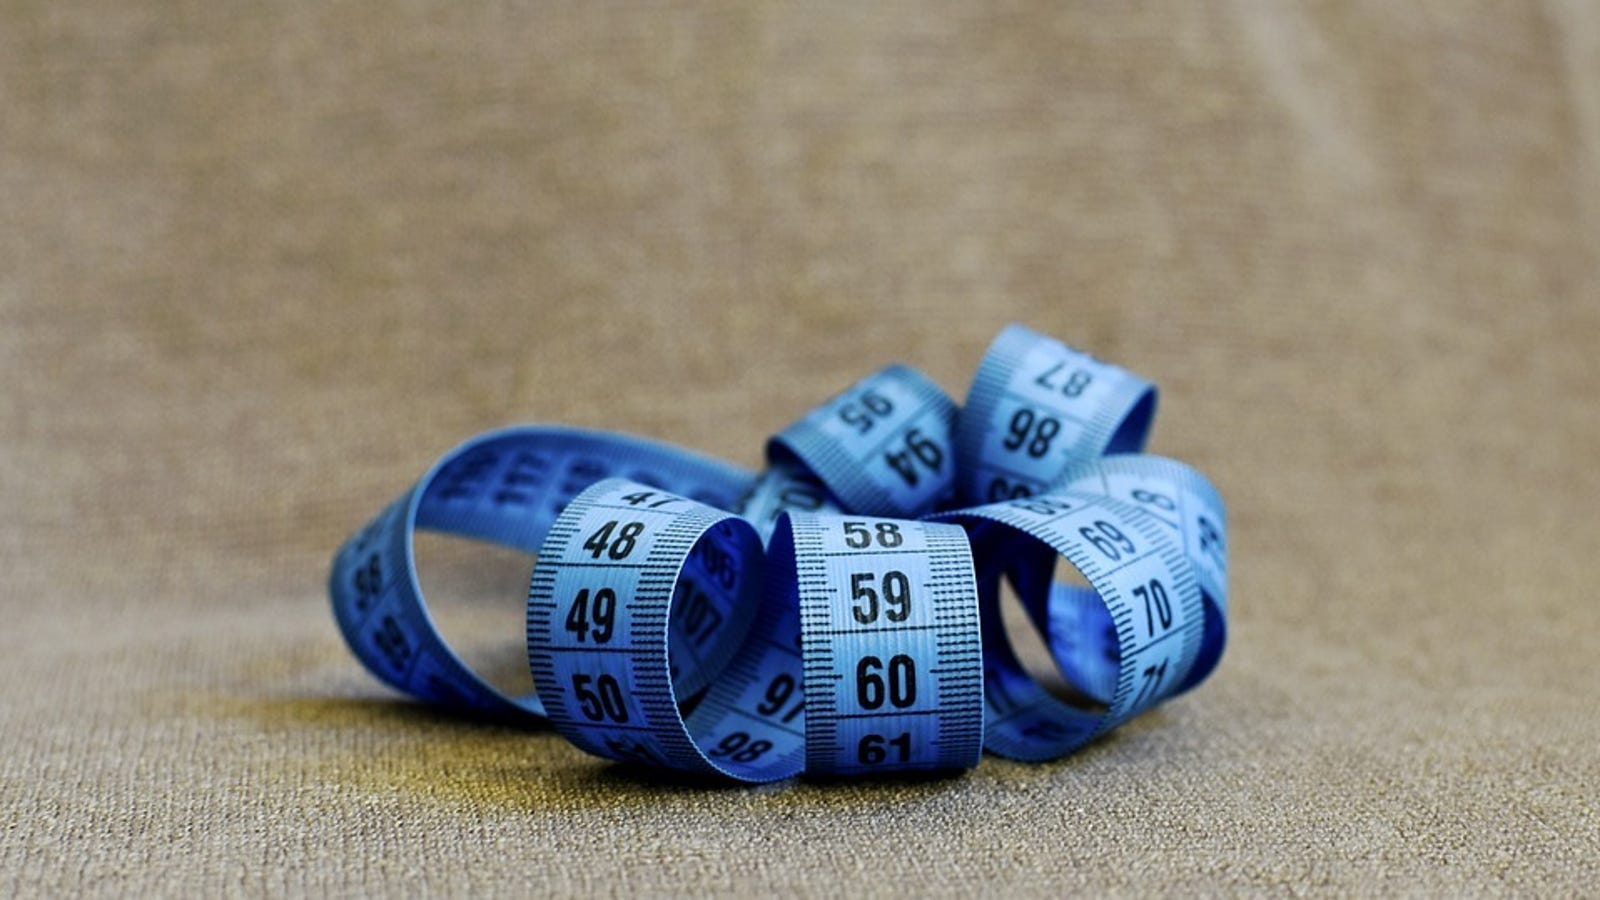 Scientists Retract Study that Found Americans Had Given Up on Losing Weight